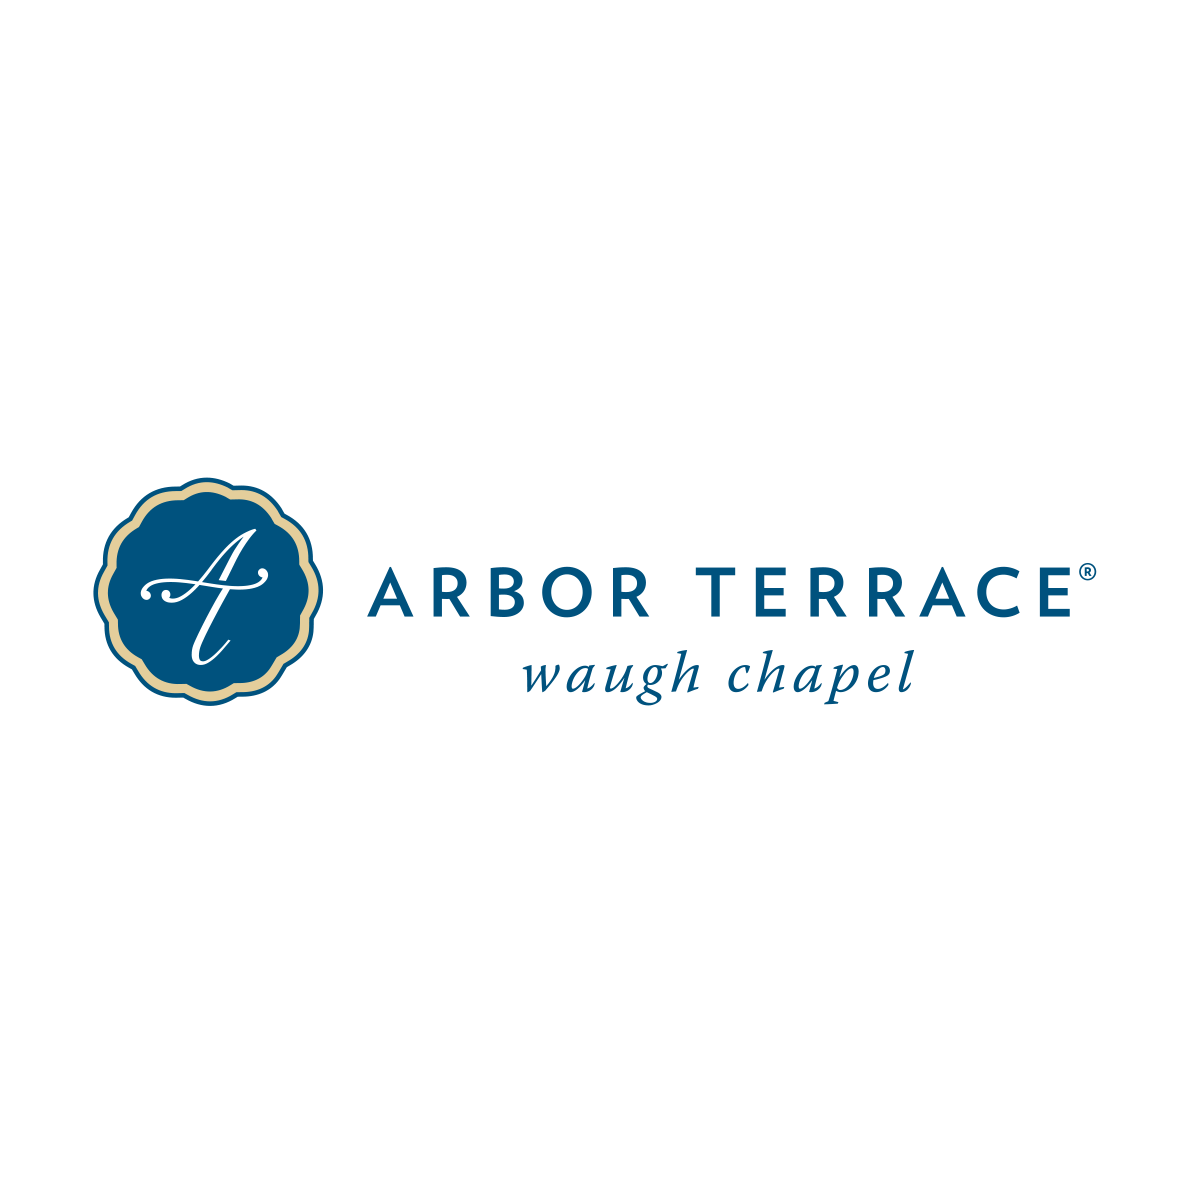 Arbor Terrace Waugh Chapel